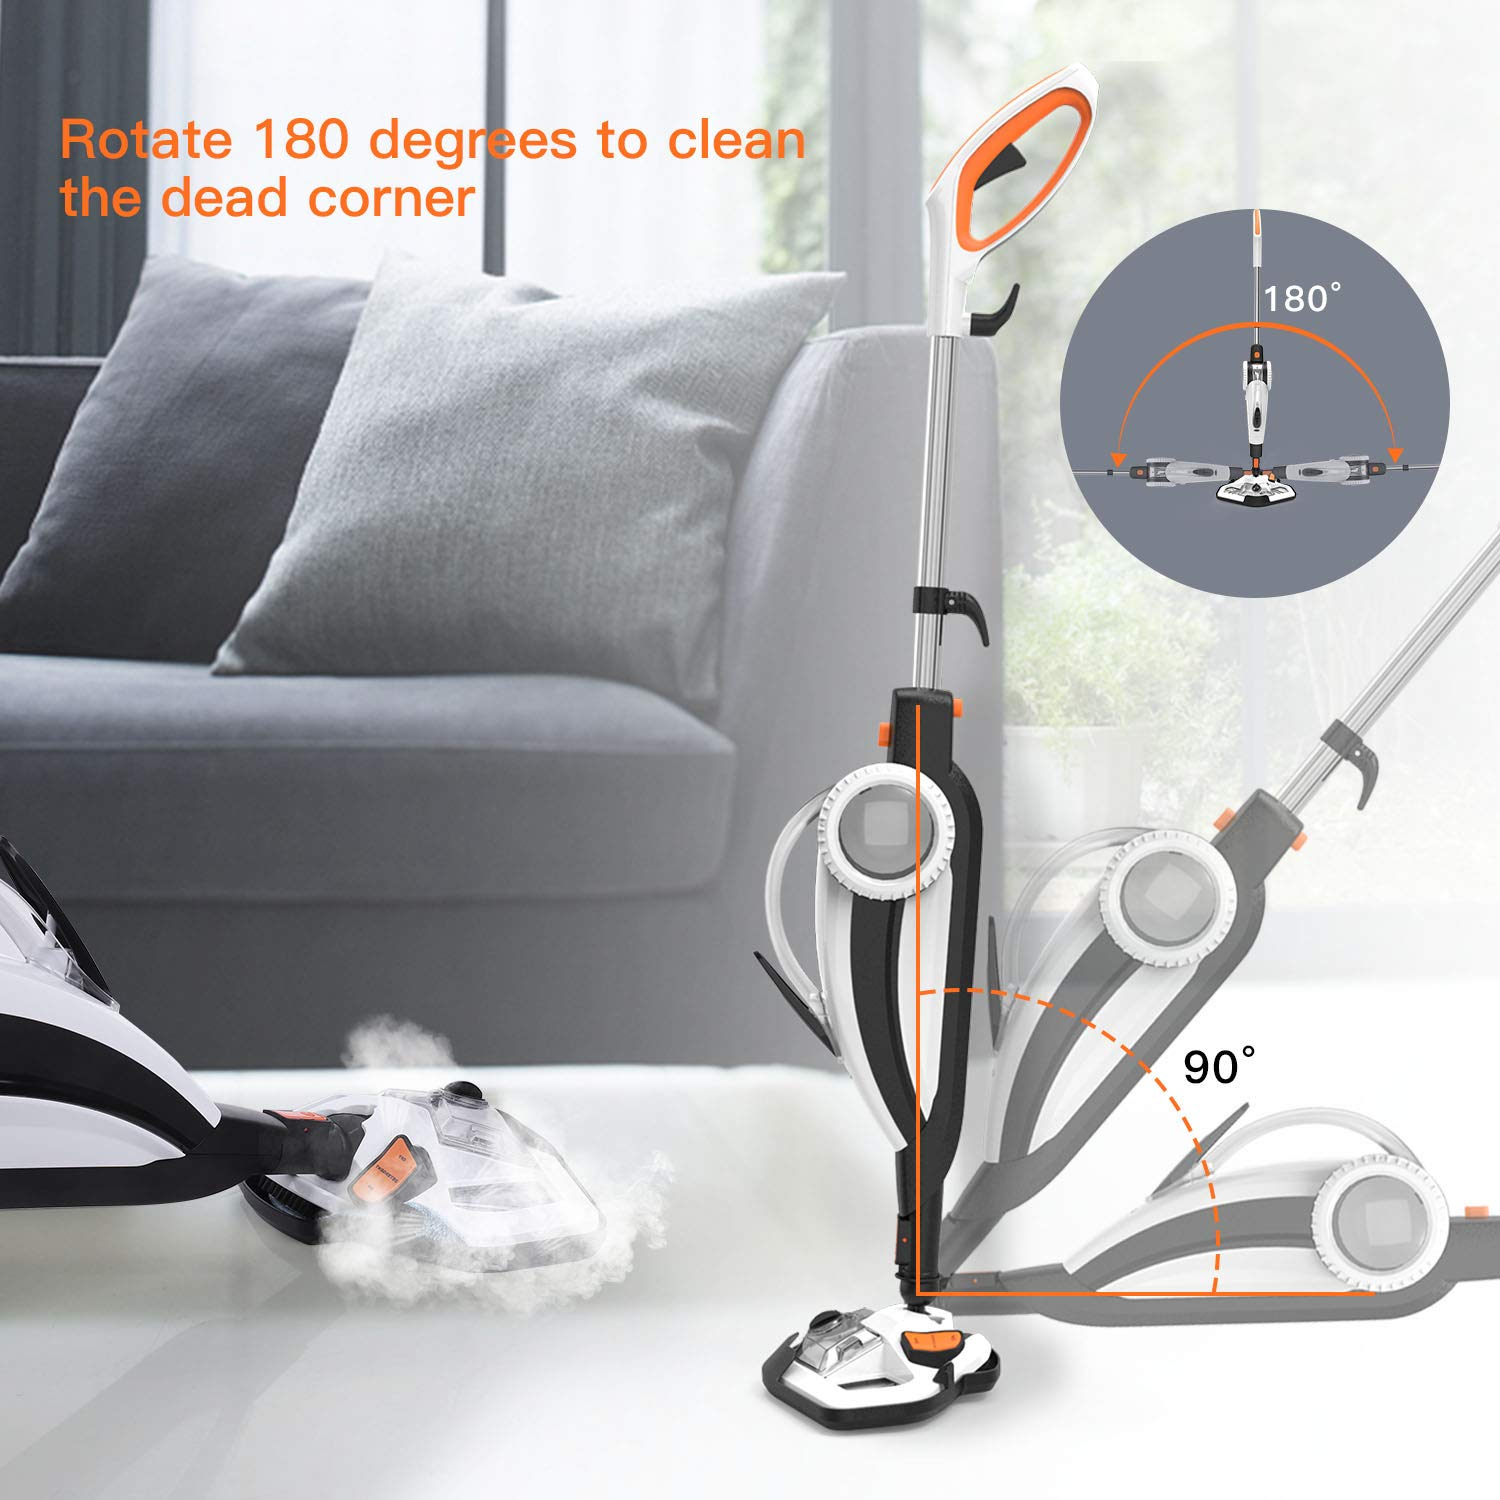 TACKLIFE Steam Mop, Steam Cleaner Multifunction Floor Steamer and Hand-held Steam Floor Mop 2 in 1, 1400W Portable Electric Scrubber Heating in 5s, with 11 Accessories by TACKLIFE (Image #5)